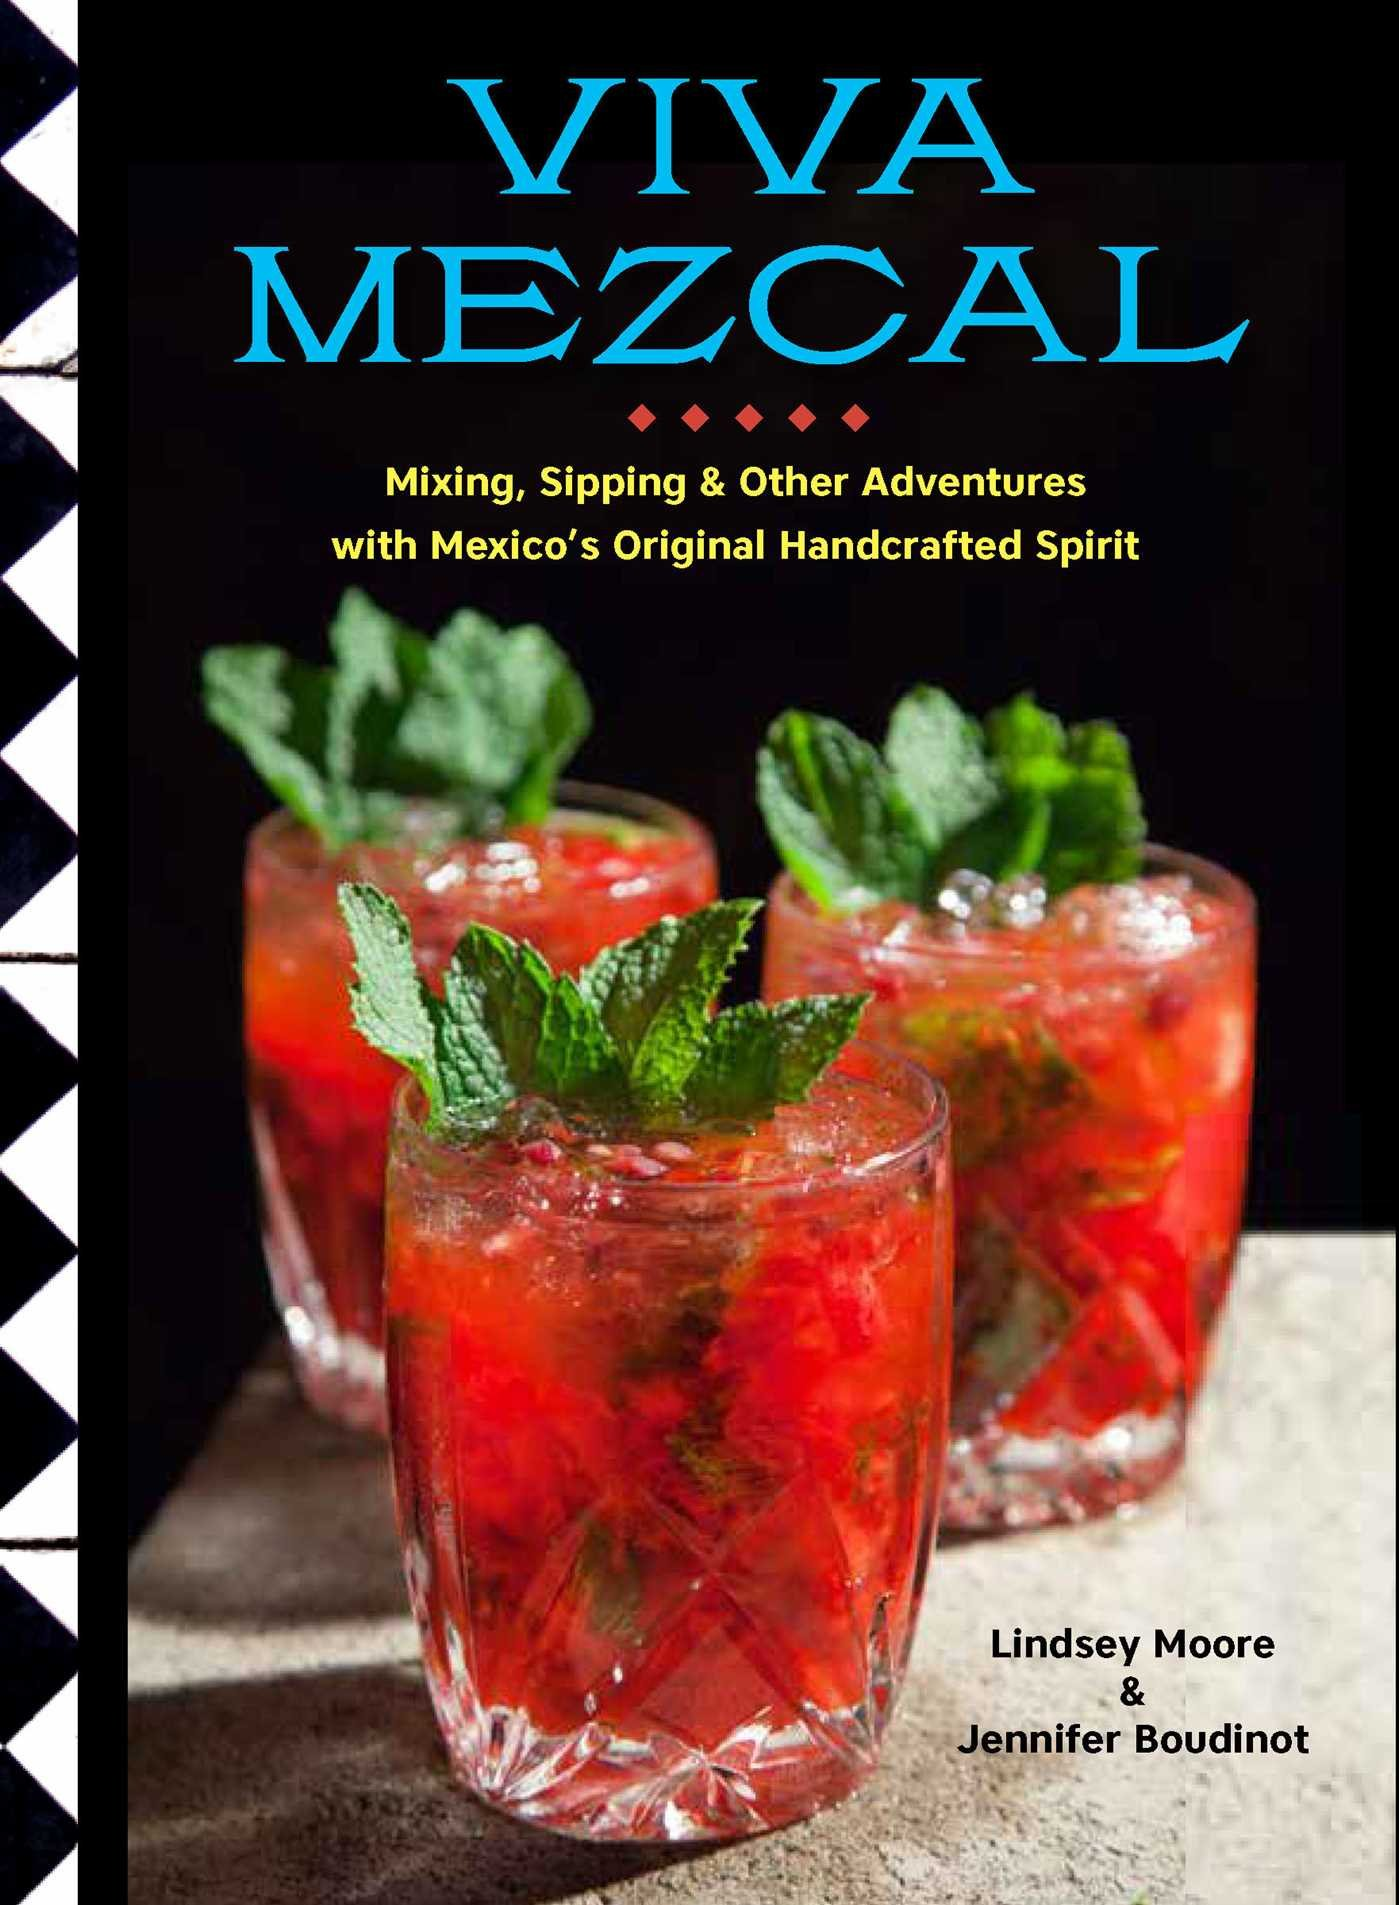 a love letter to my favorite spirit - Smoky, artisanal, historic, magical mezcal: it's one of the fastest growing spirits in the United States and a part of everyday life in Mexico. Find out why in this beginner's guide to appreciating mezcal with co-author Lindsey Moore that also includes 50 cocktail recipes.Publisher: Weldon Owen Books, 2017Distributor: Simon & SchusterSee Inside / Buy on Amazon